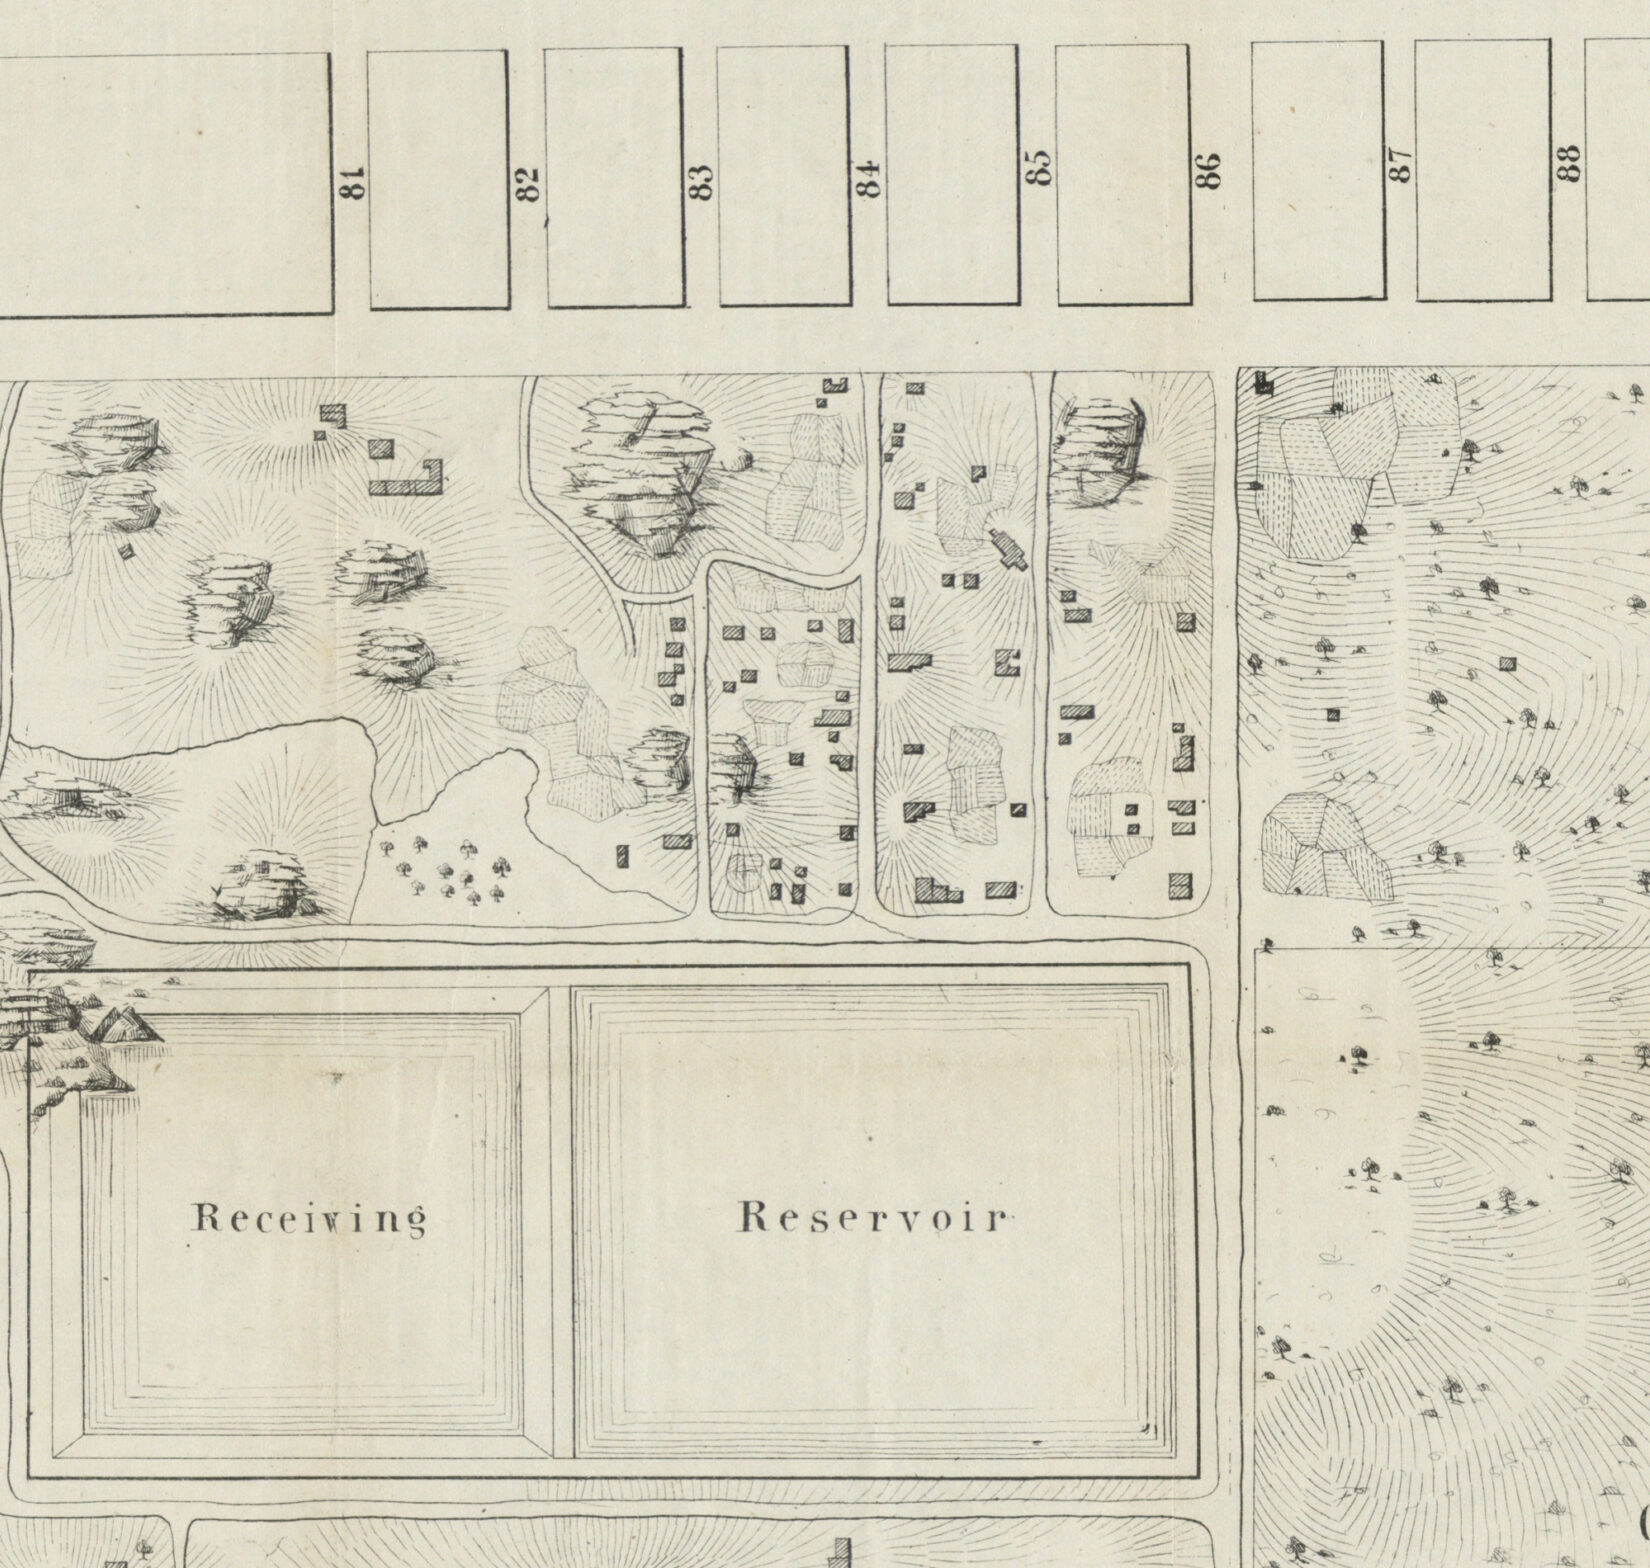 The map is an antique engraving showing plots, paths, and trees.